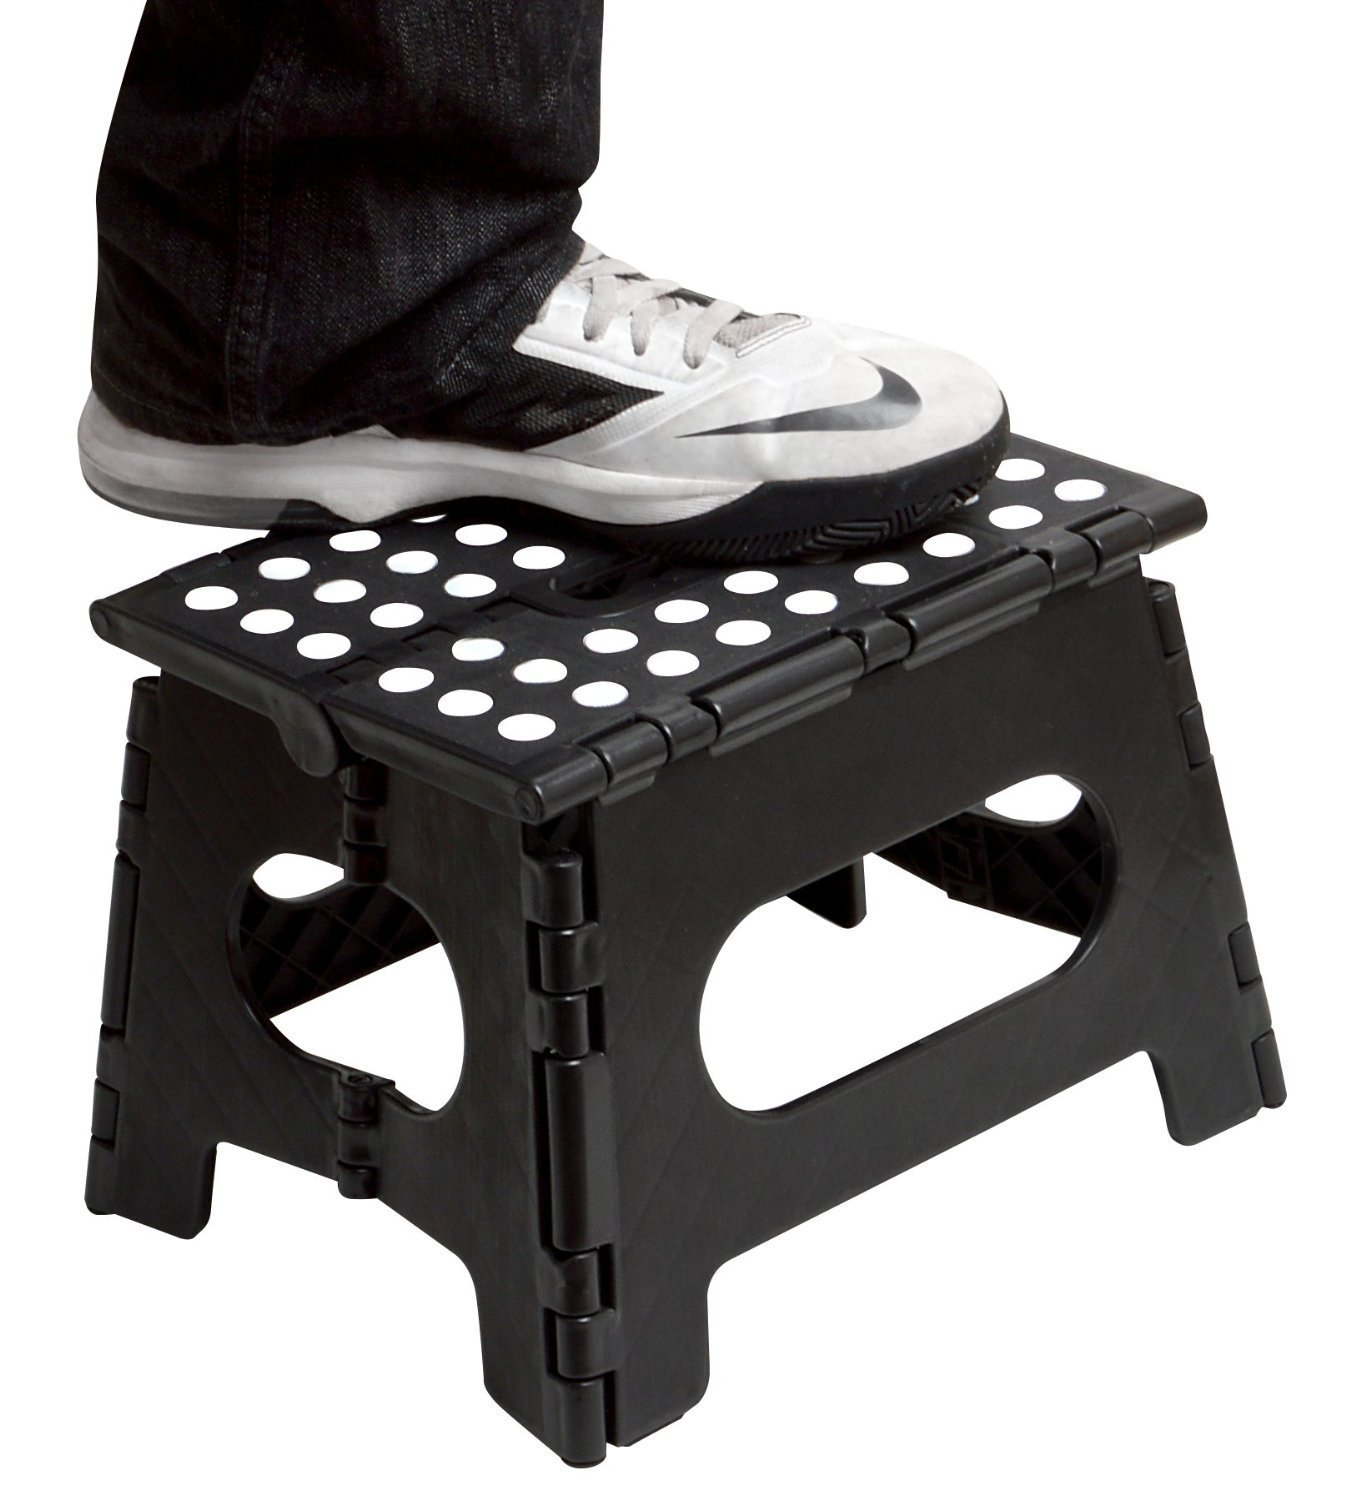 Amazon.com Folding Step Stool - 11  Wide - The Lightweight Step Stool is Sturdy Enough to Support Adults and Safe Enough for Kids.  sc 1 st  Amazon.com & Amazon.com: Folding Step Stool - 11